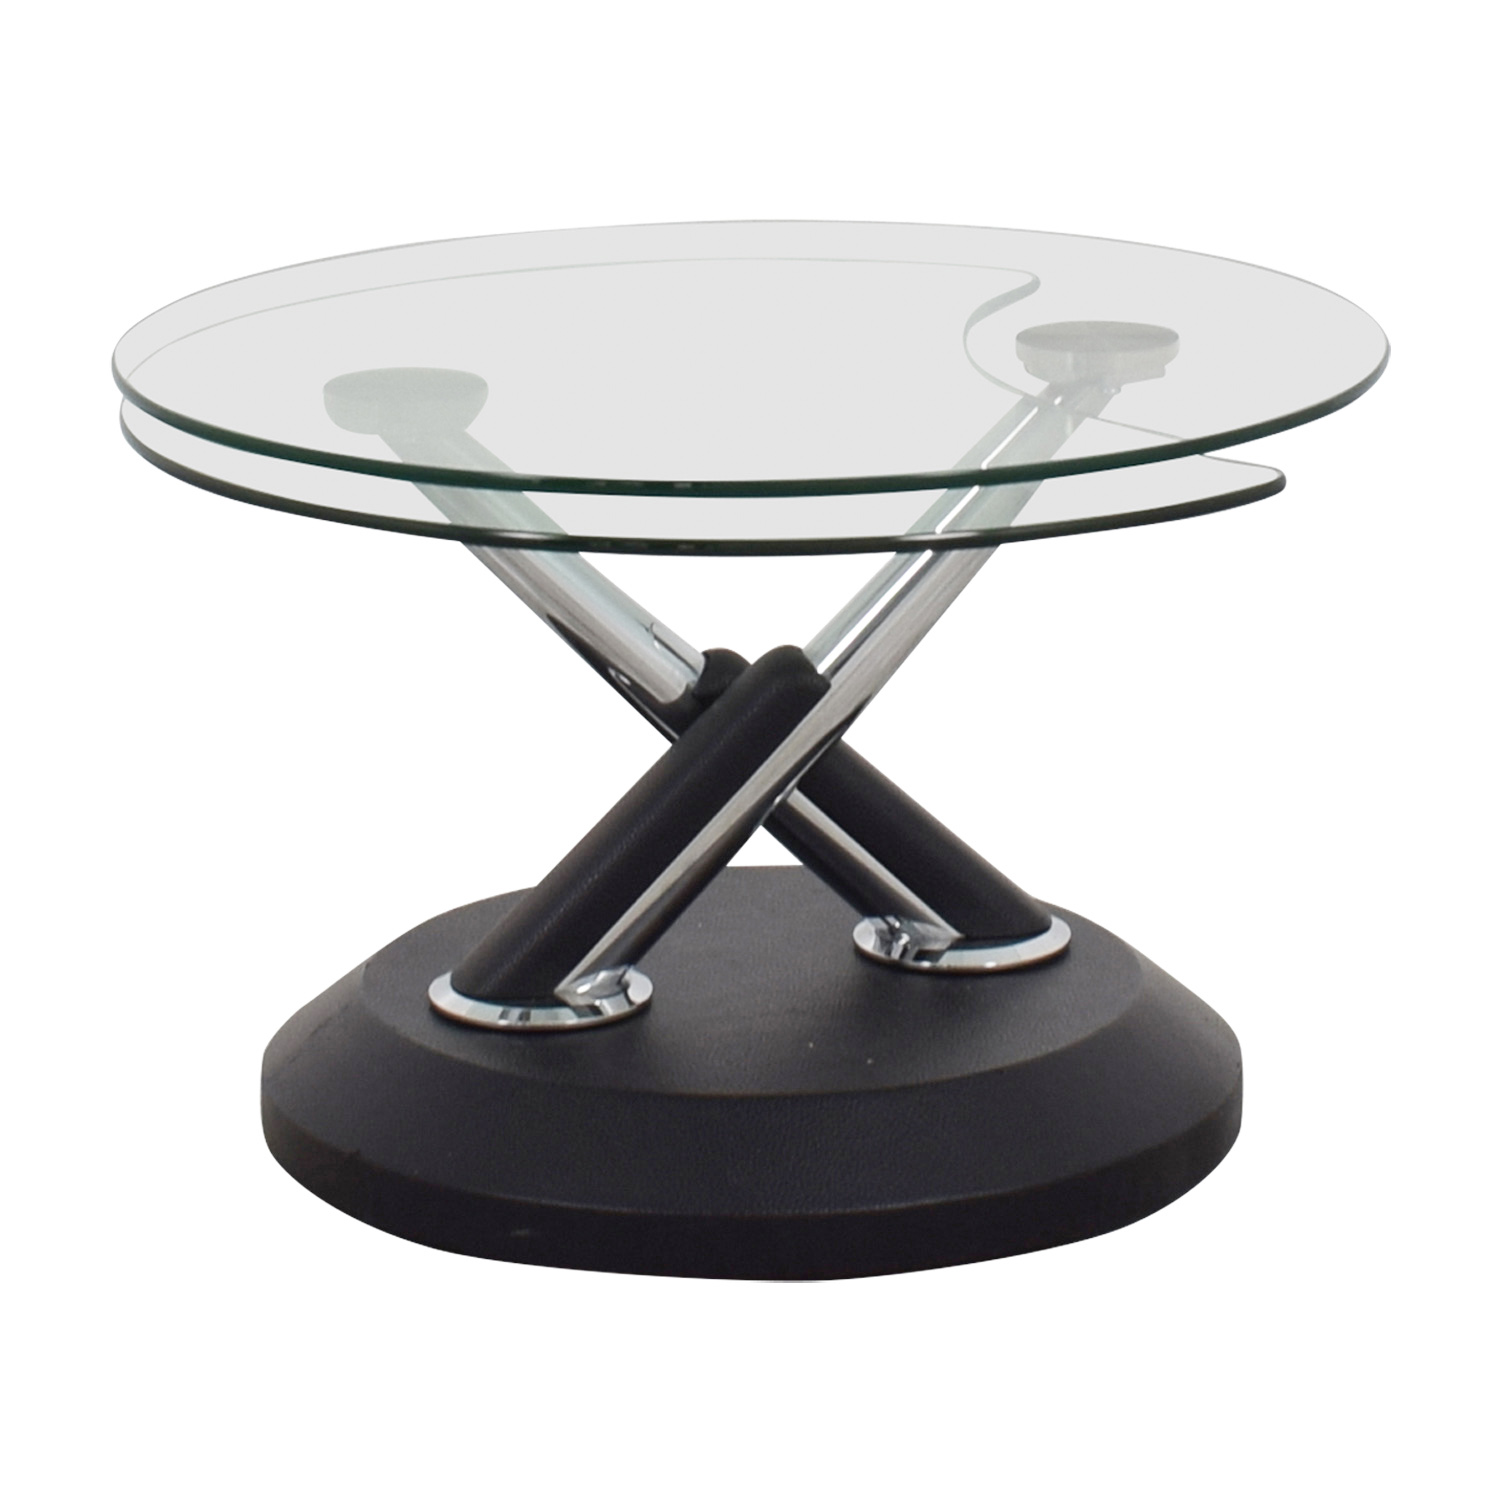 Merveilleux 90% OFF   West Elm West Elm Glass Swivel Coffee Table / Tables